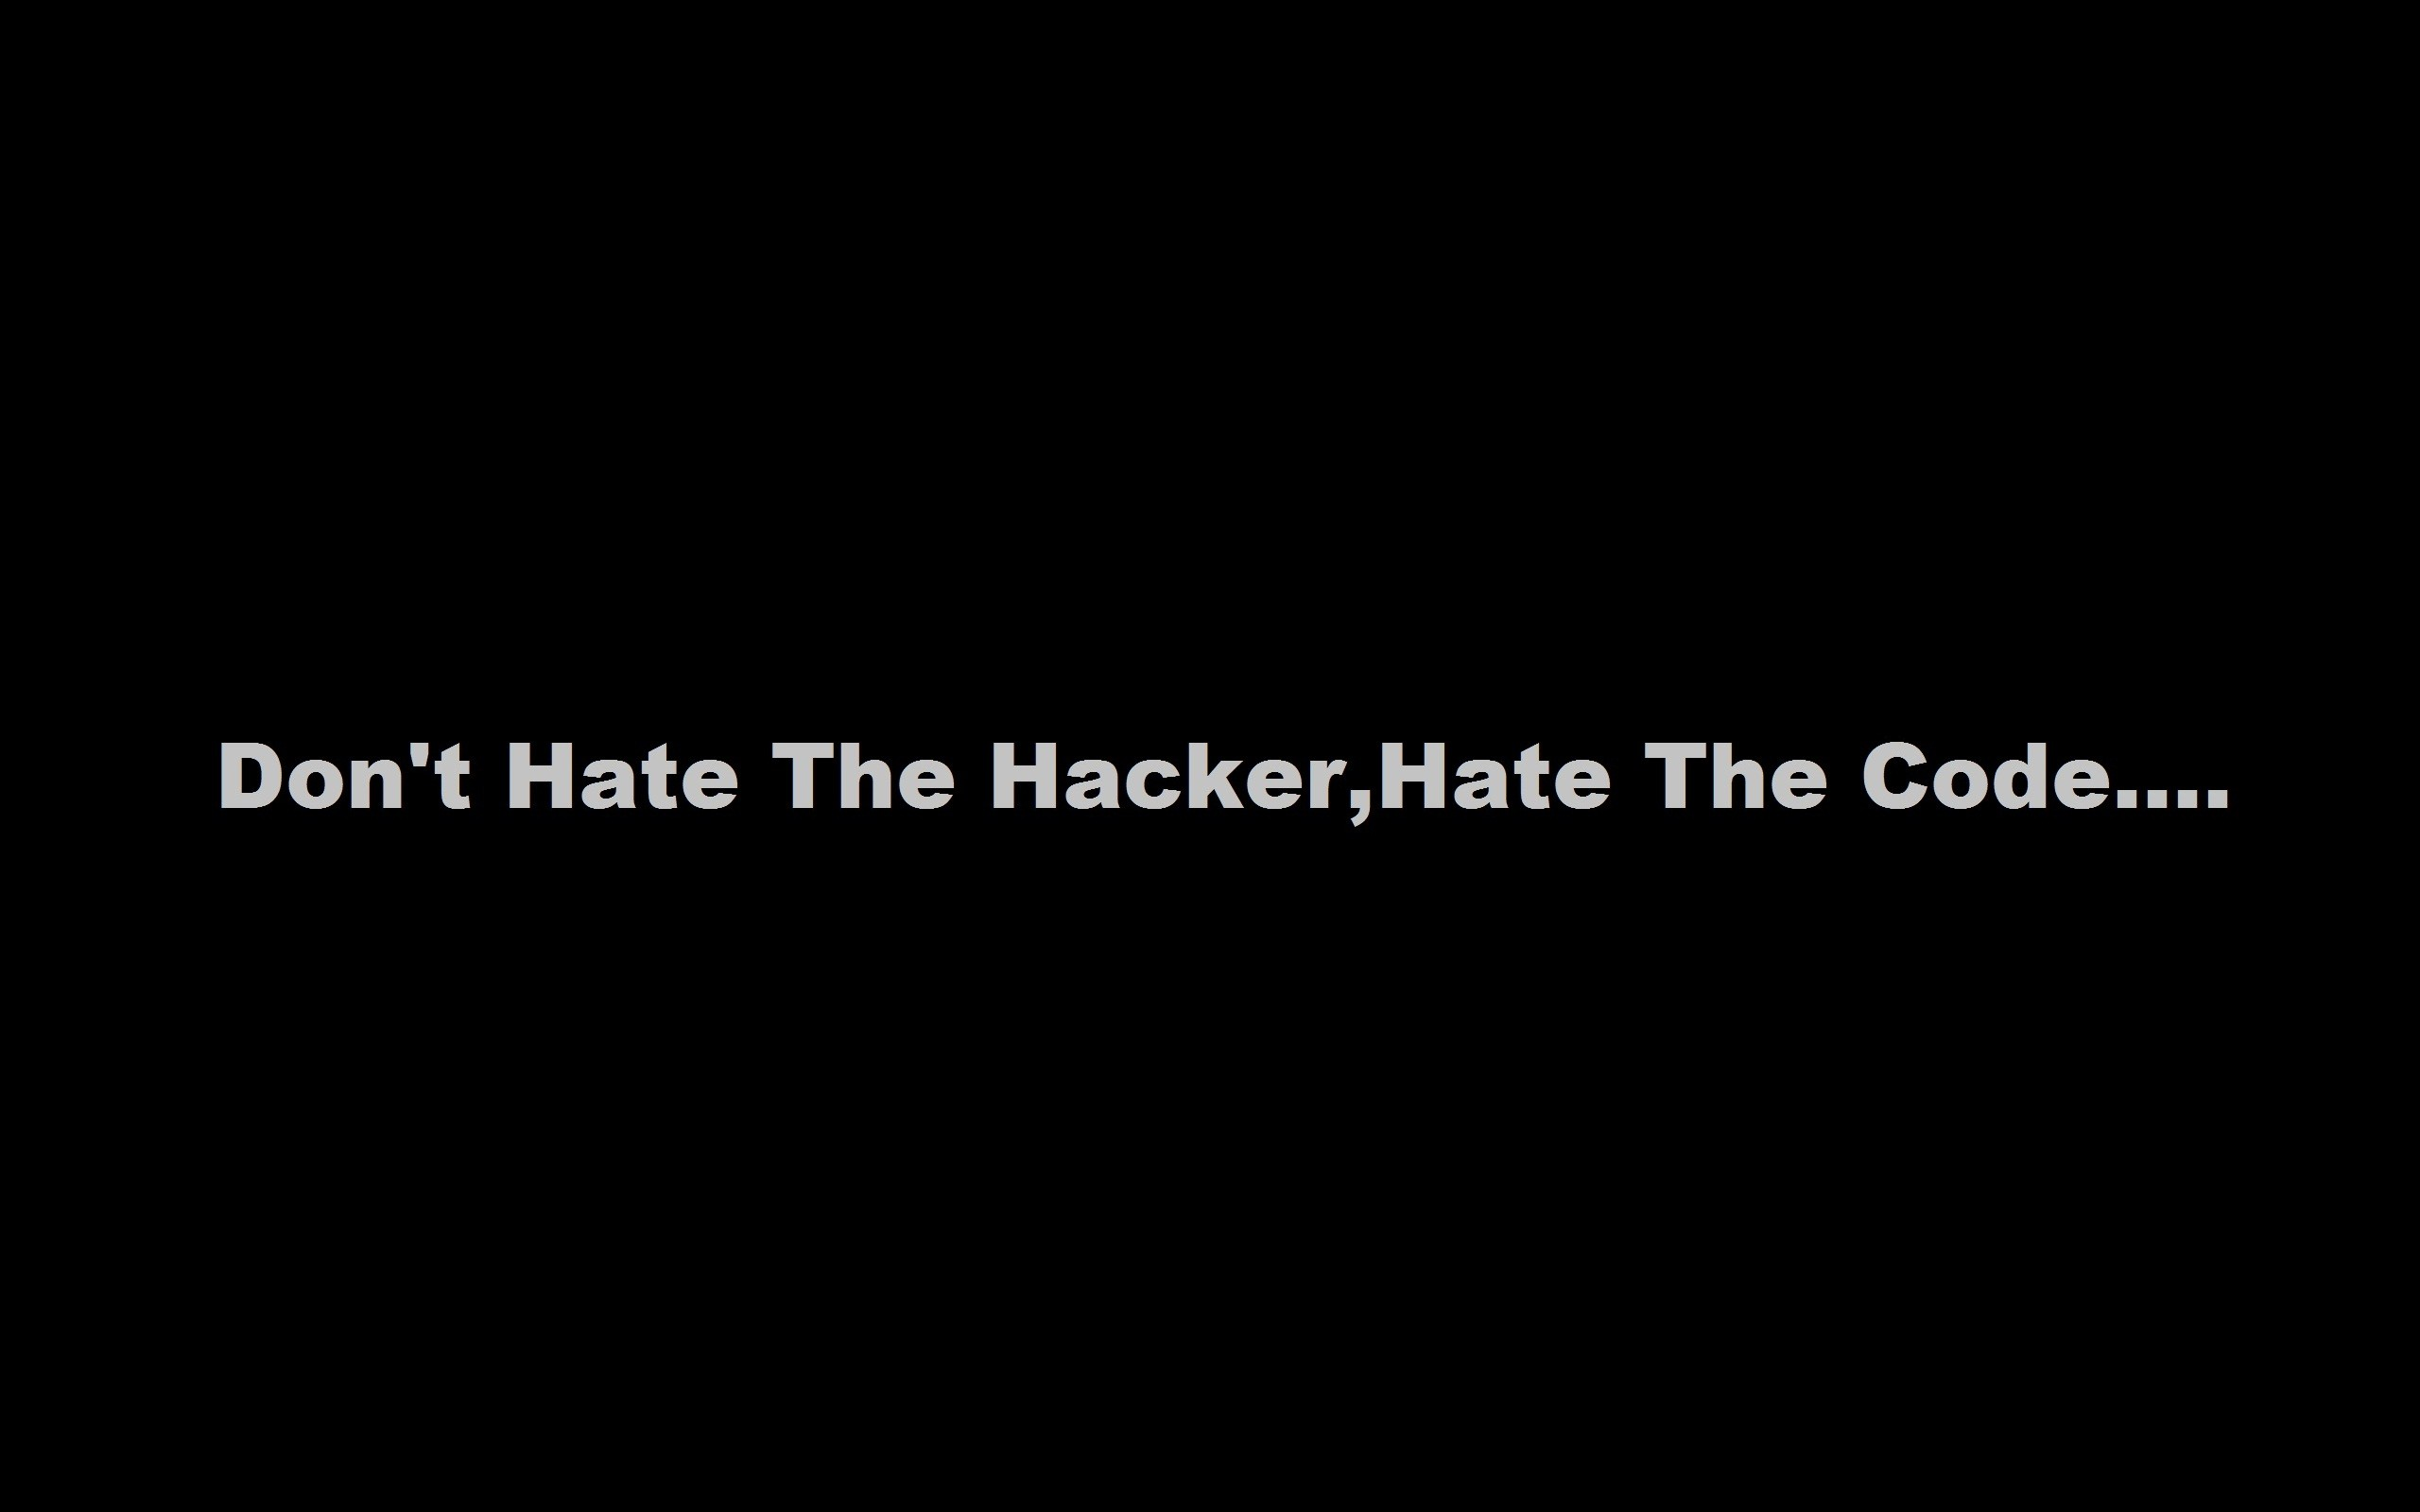 text quotes code hackers text only black background wallpaper